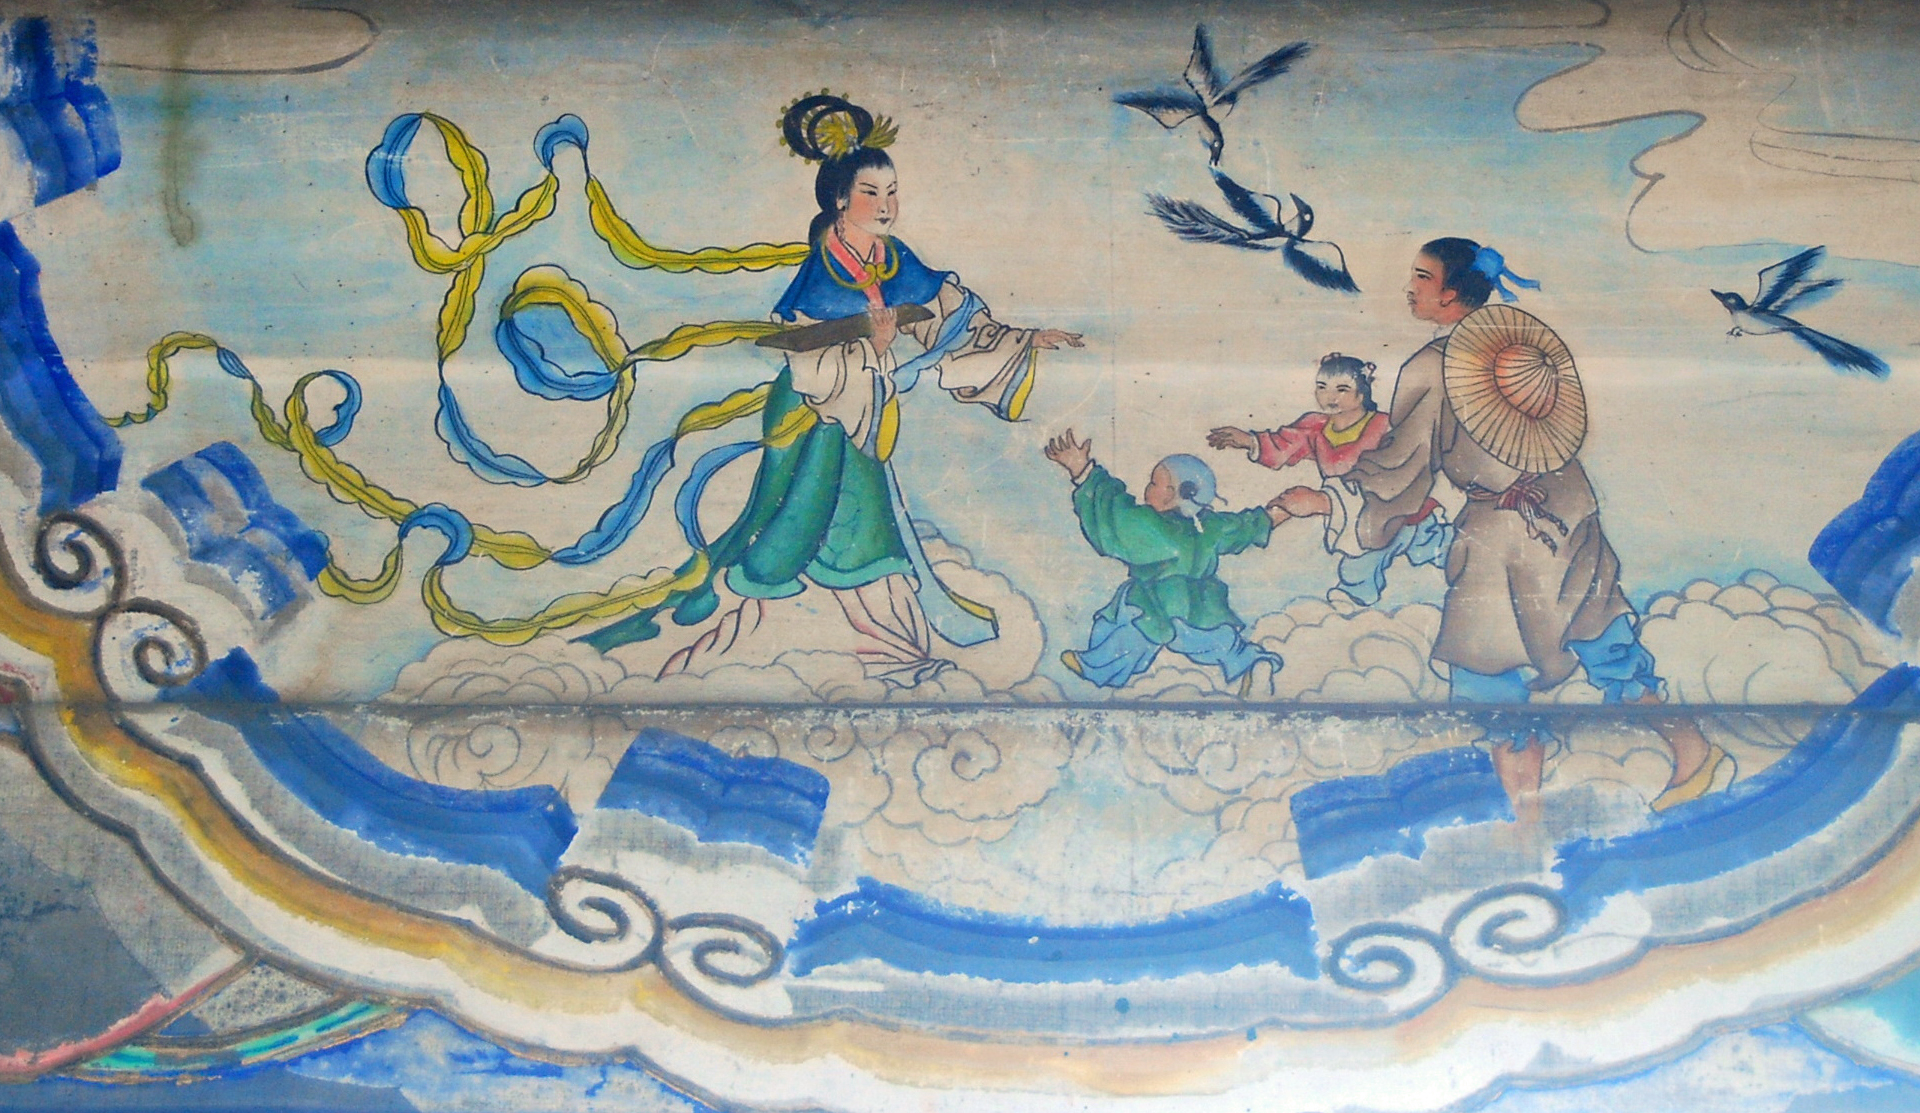 Star-crossed lovers Niulang and Zhinu are permitted to be together one day year by a bridge of magpies, during the Qixi Festival. The painting is in the Long Corridor of the Summer Palace in Beijing.